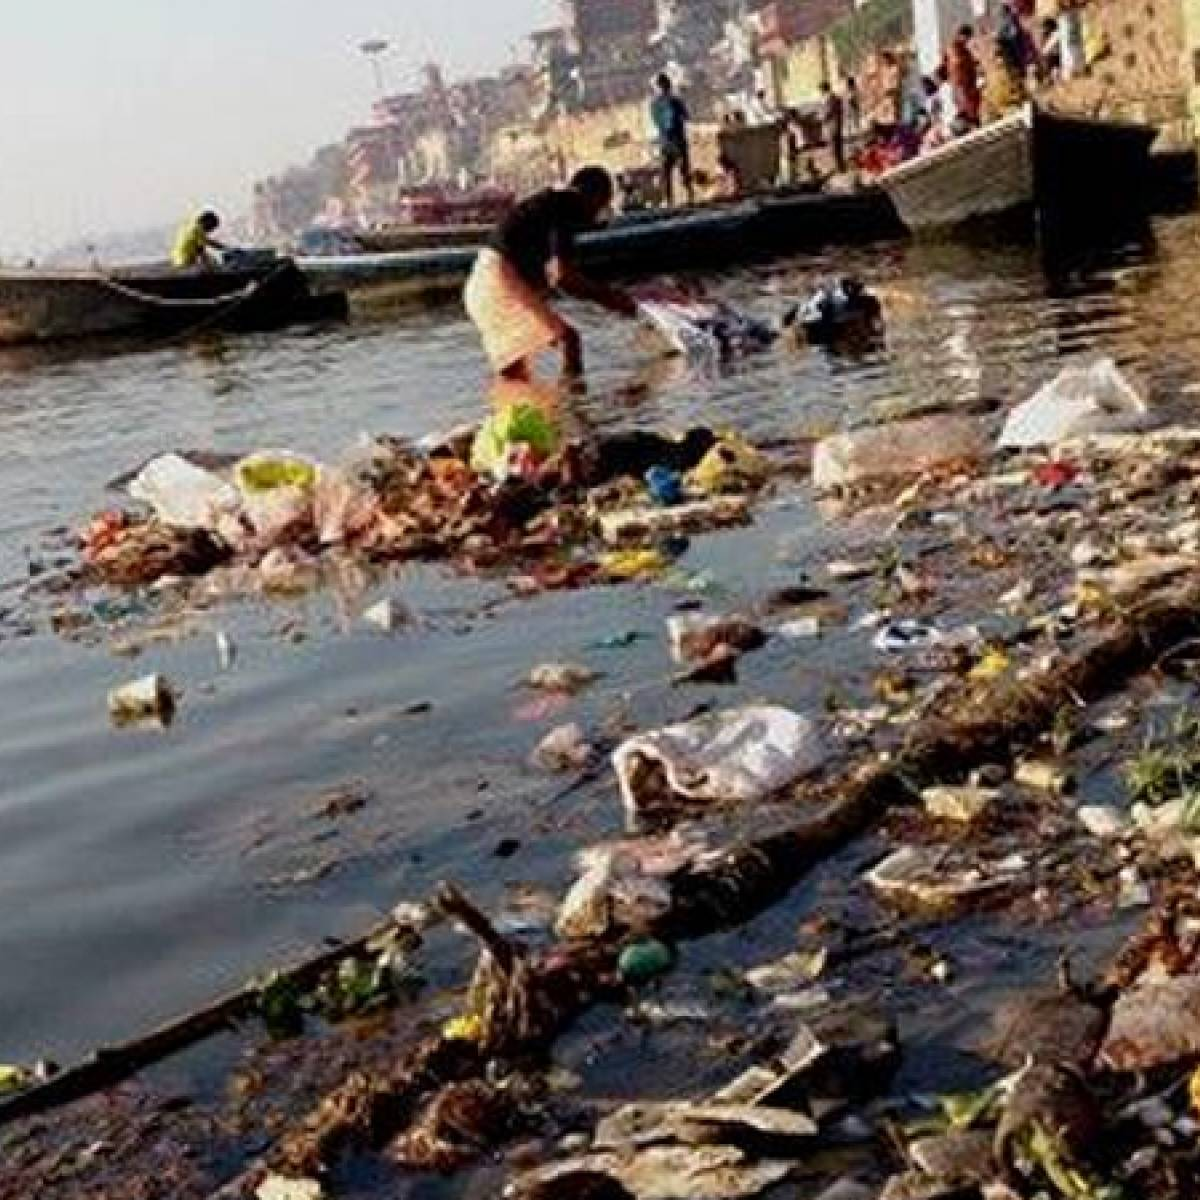 INR 50,000 penalty for dumping waste in or near river Ganga